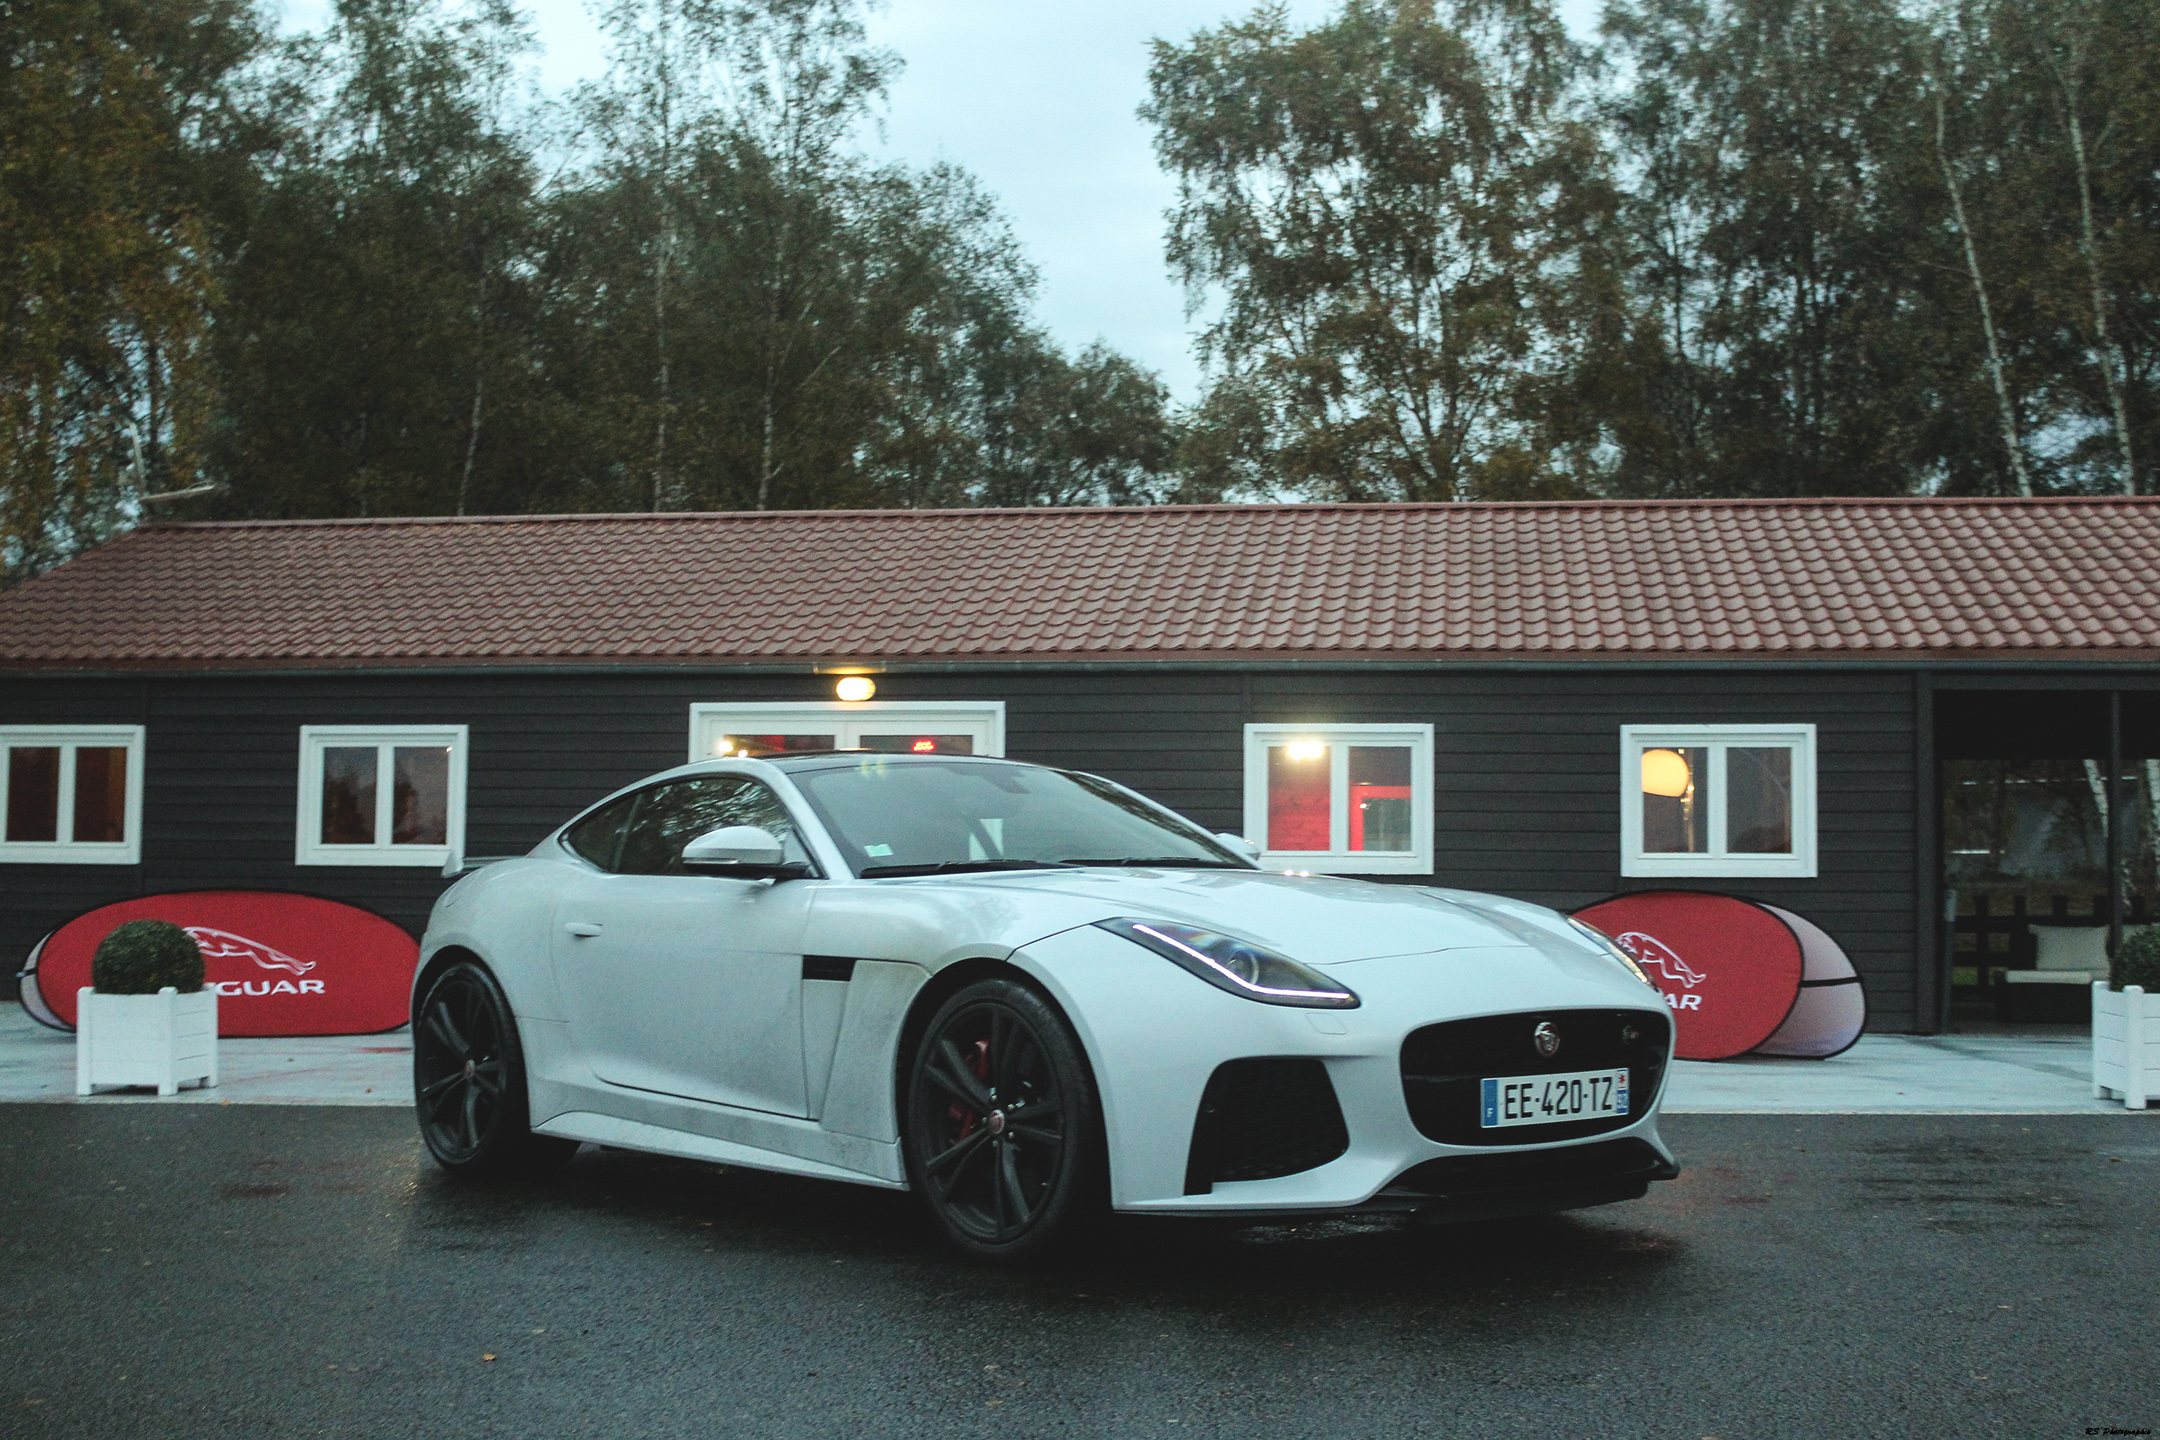 Jaguar F-Type SVR - avant / front - zoom - photo Arnaud Demasier - RS Photographie